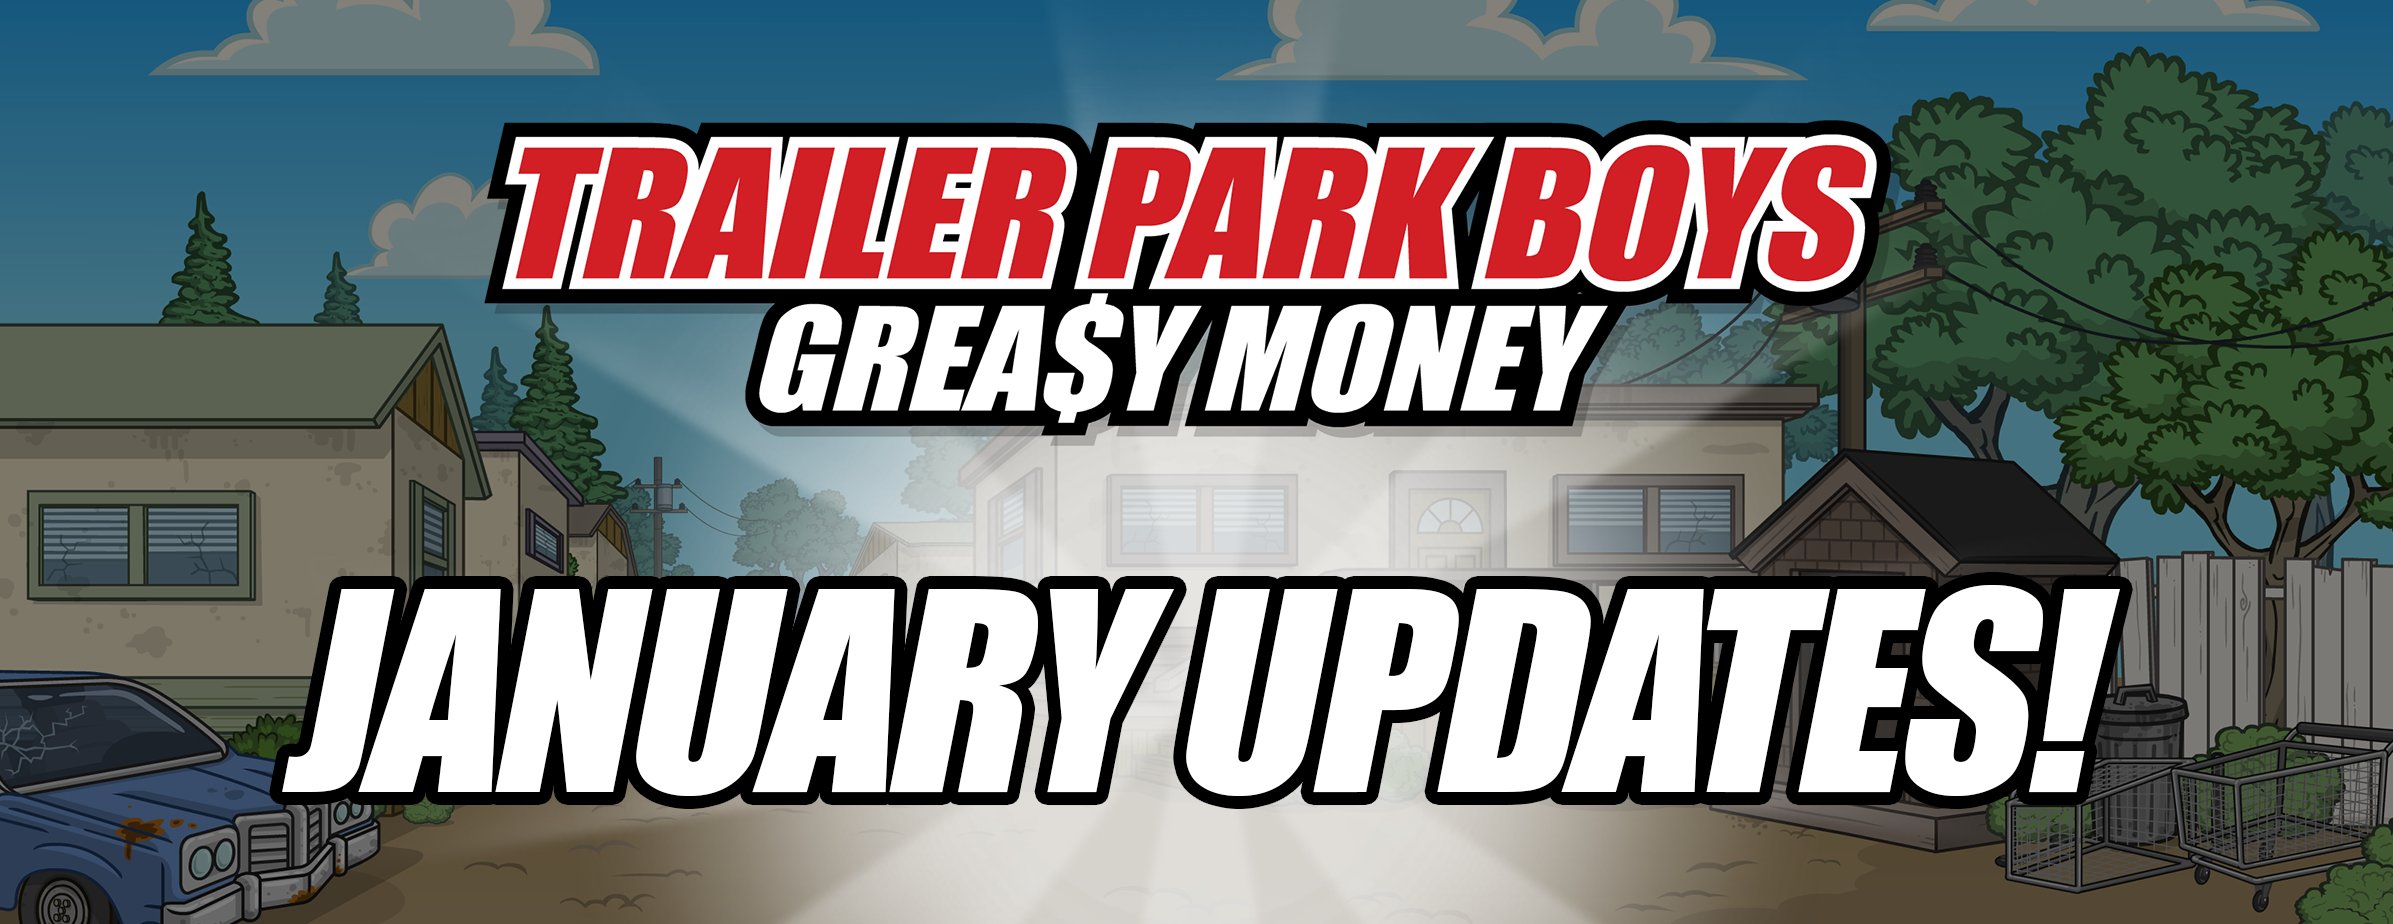 Trailer Park Boys: January Events!